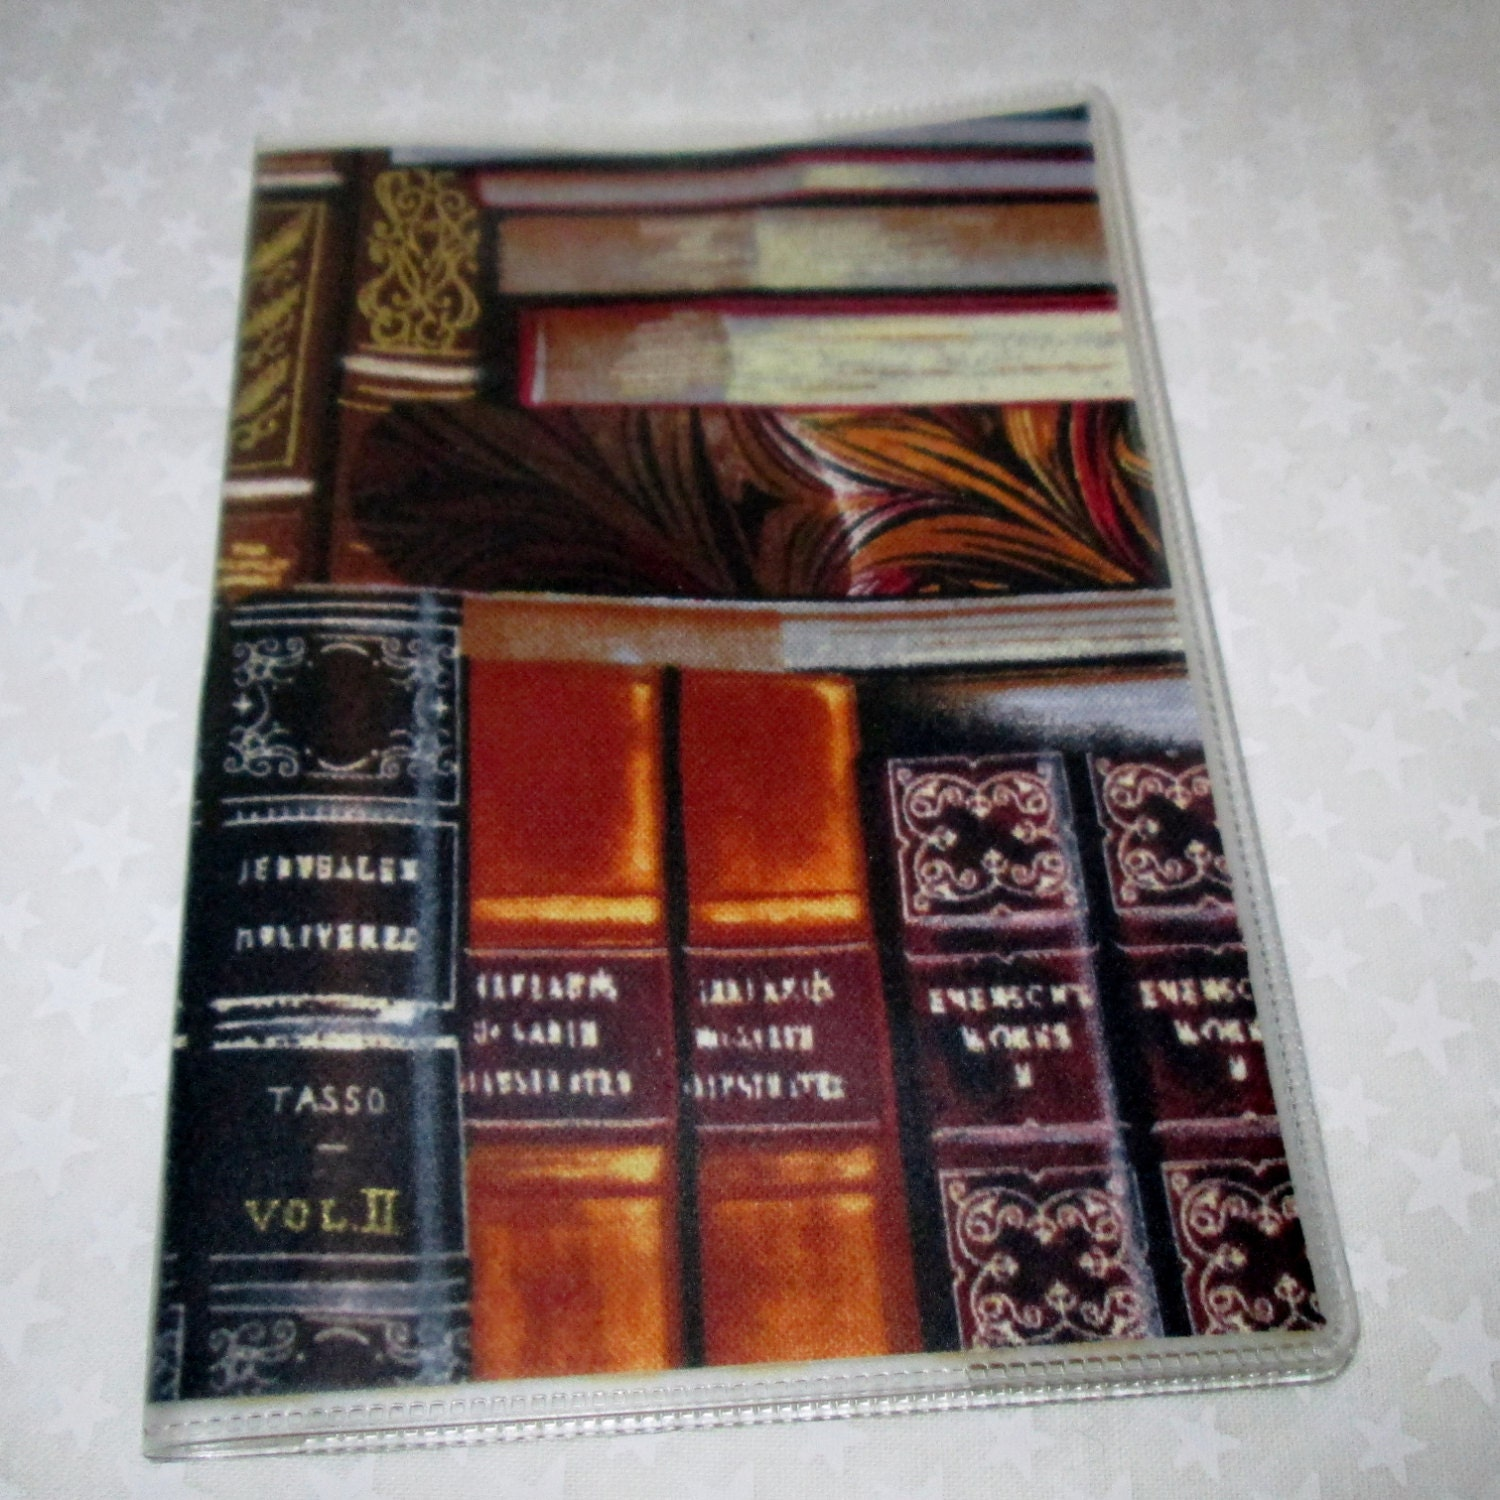 Vinyl Book Cover Material : Passport cover library books fabric vinyl travel accessory